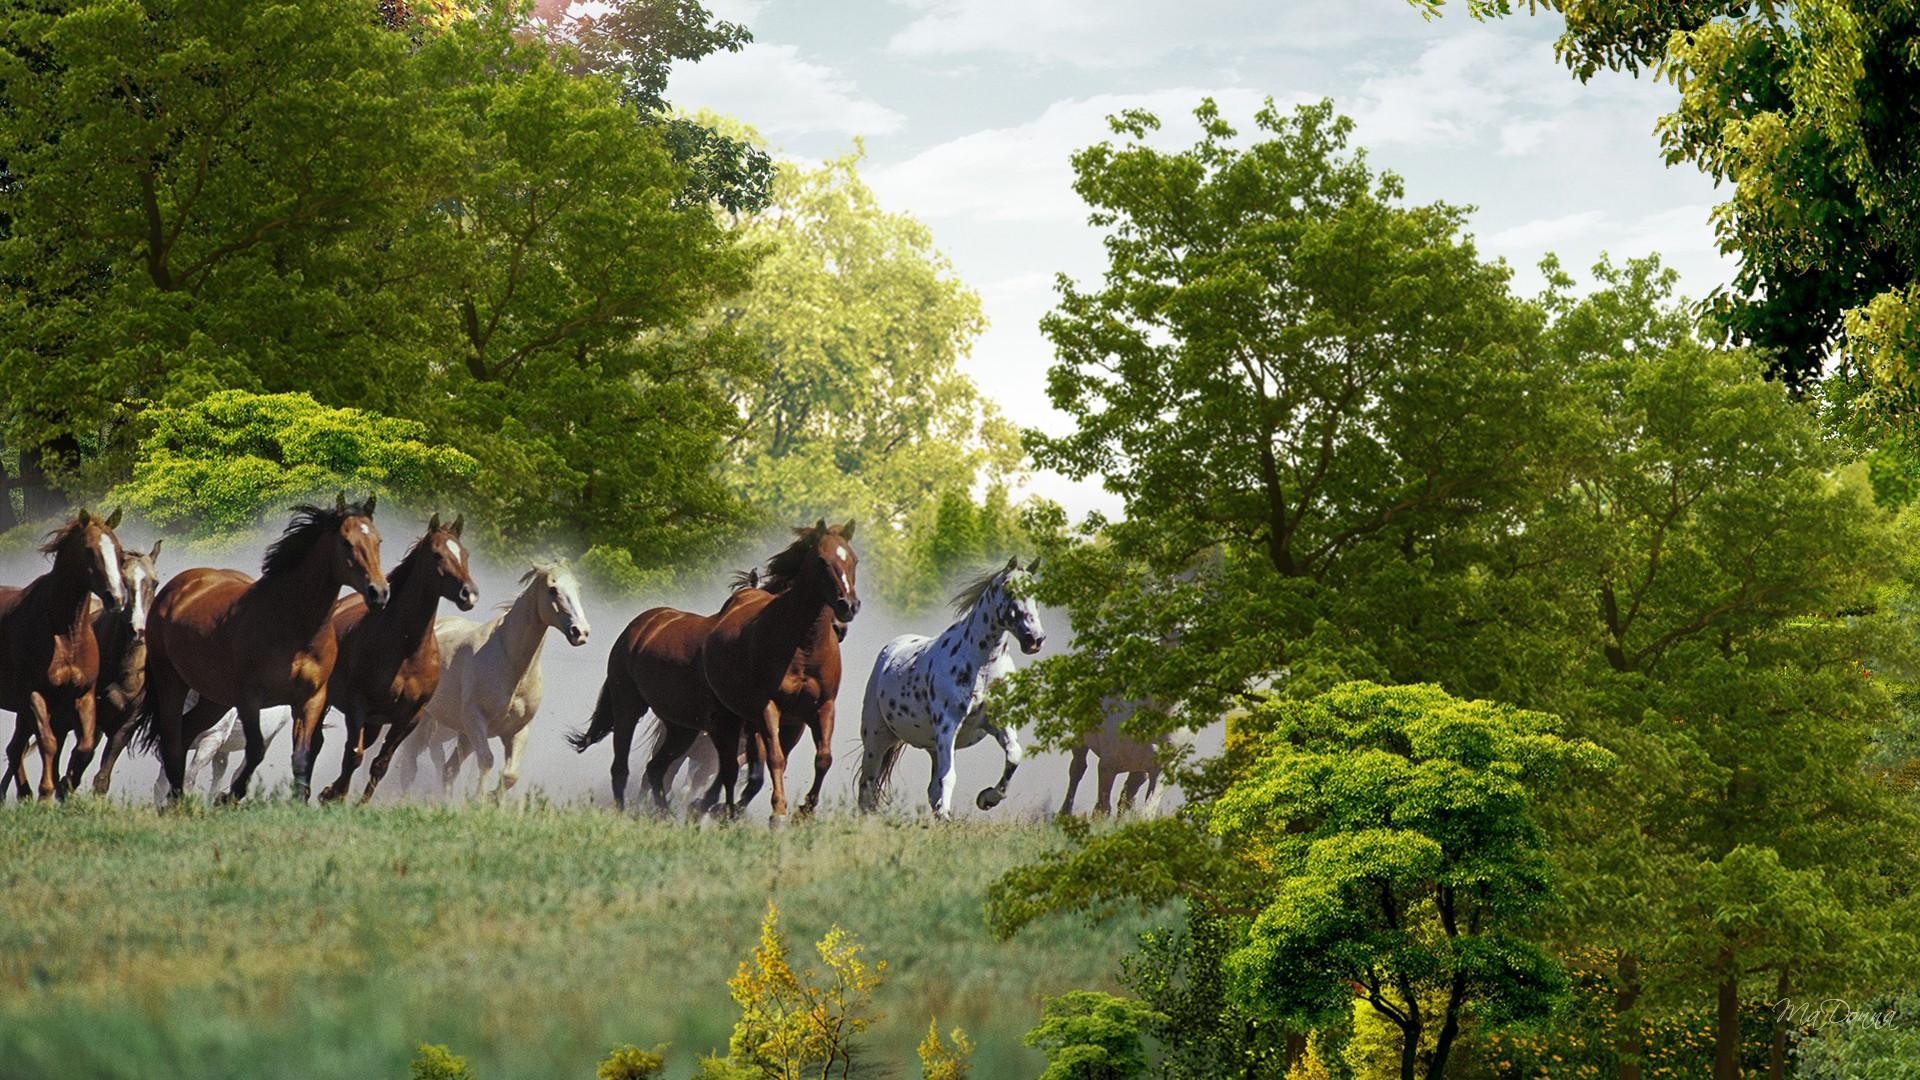 Running Horses Wallpaper - WallpaperSafari - photo#45